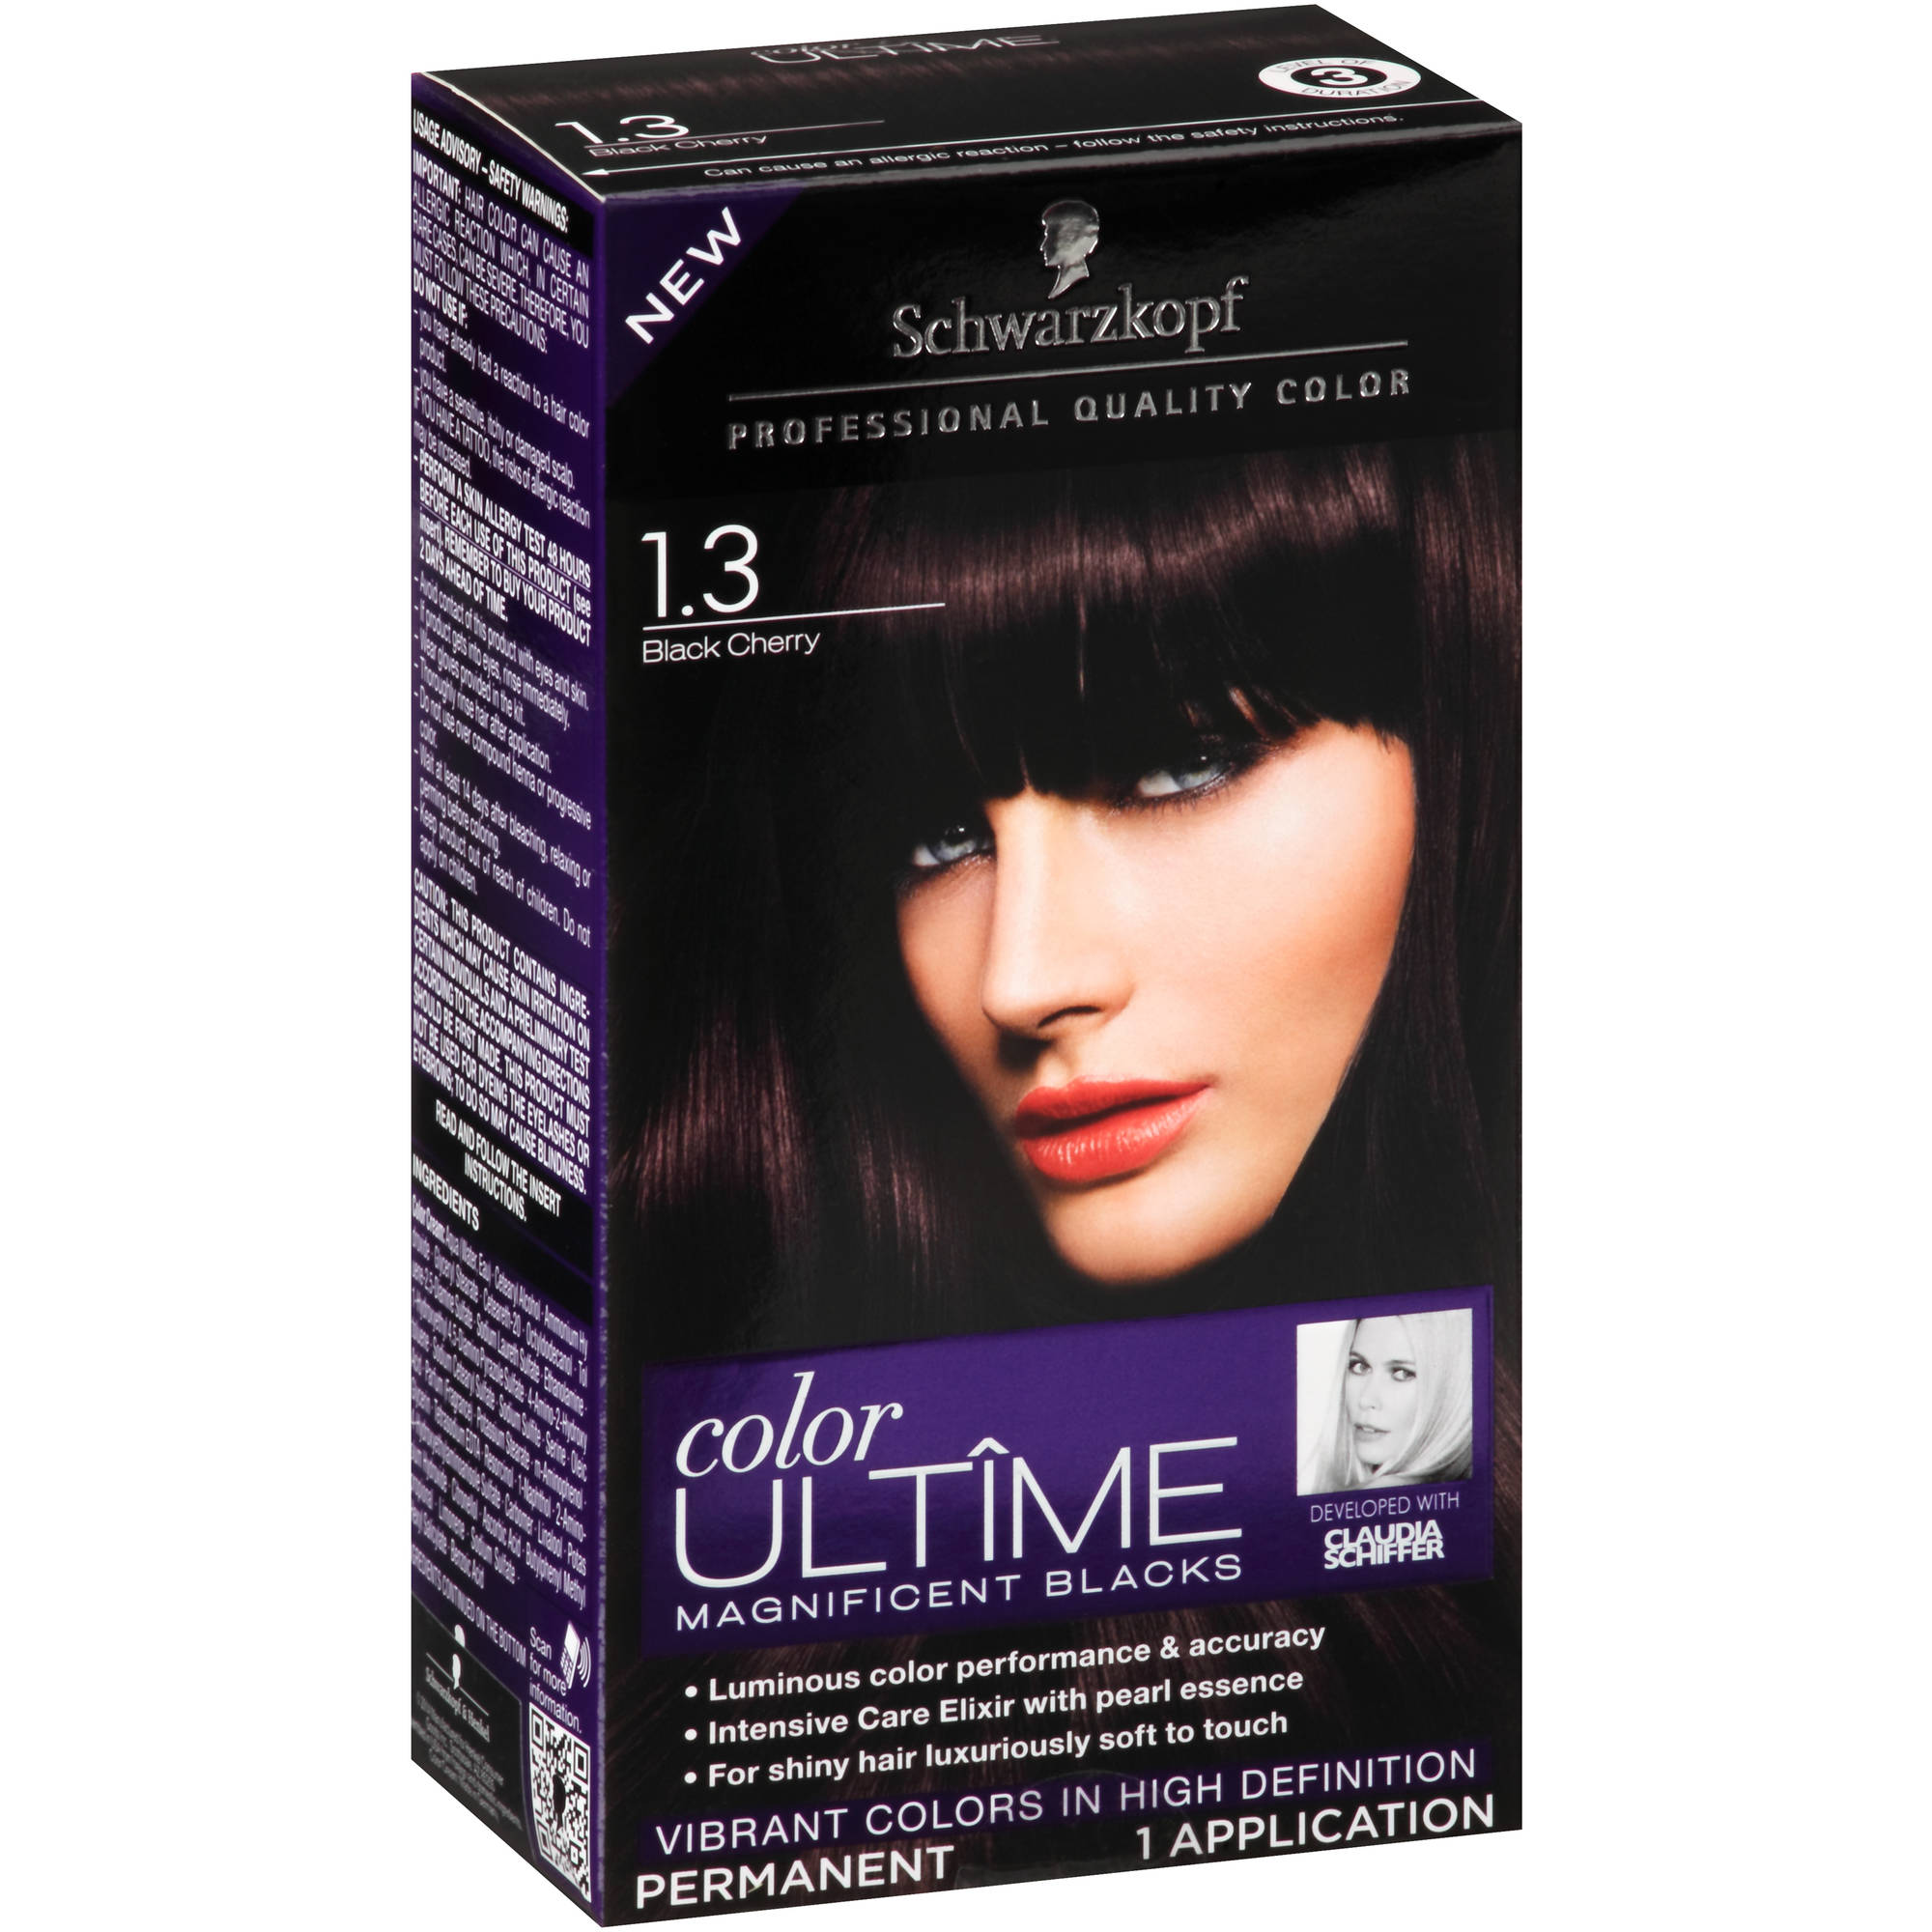 Schwarzkopf Color Ultime Magnificent Blacks Hair Coloring Kit, 1.3 Black Cherry